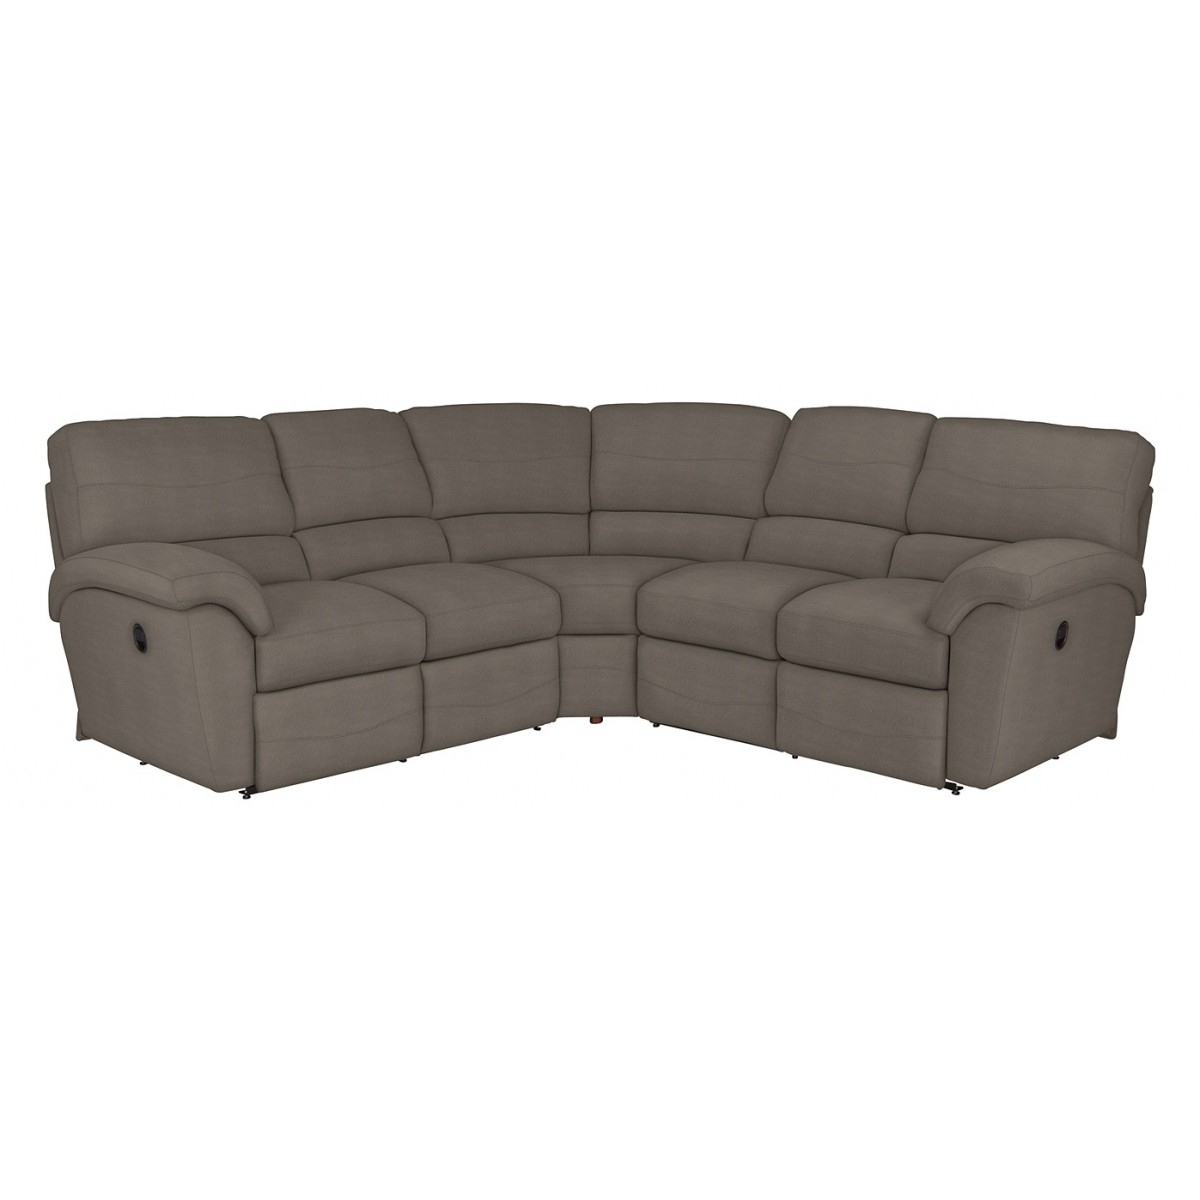 Popular Z Boy Reese Reclining Sectional With Lazyboy Sectional Sofas (View 12 of 15)